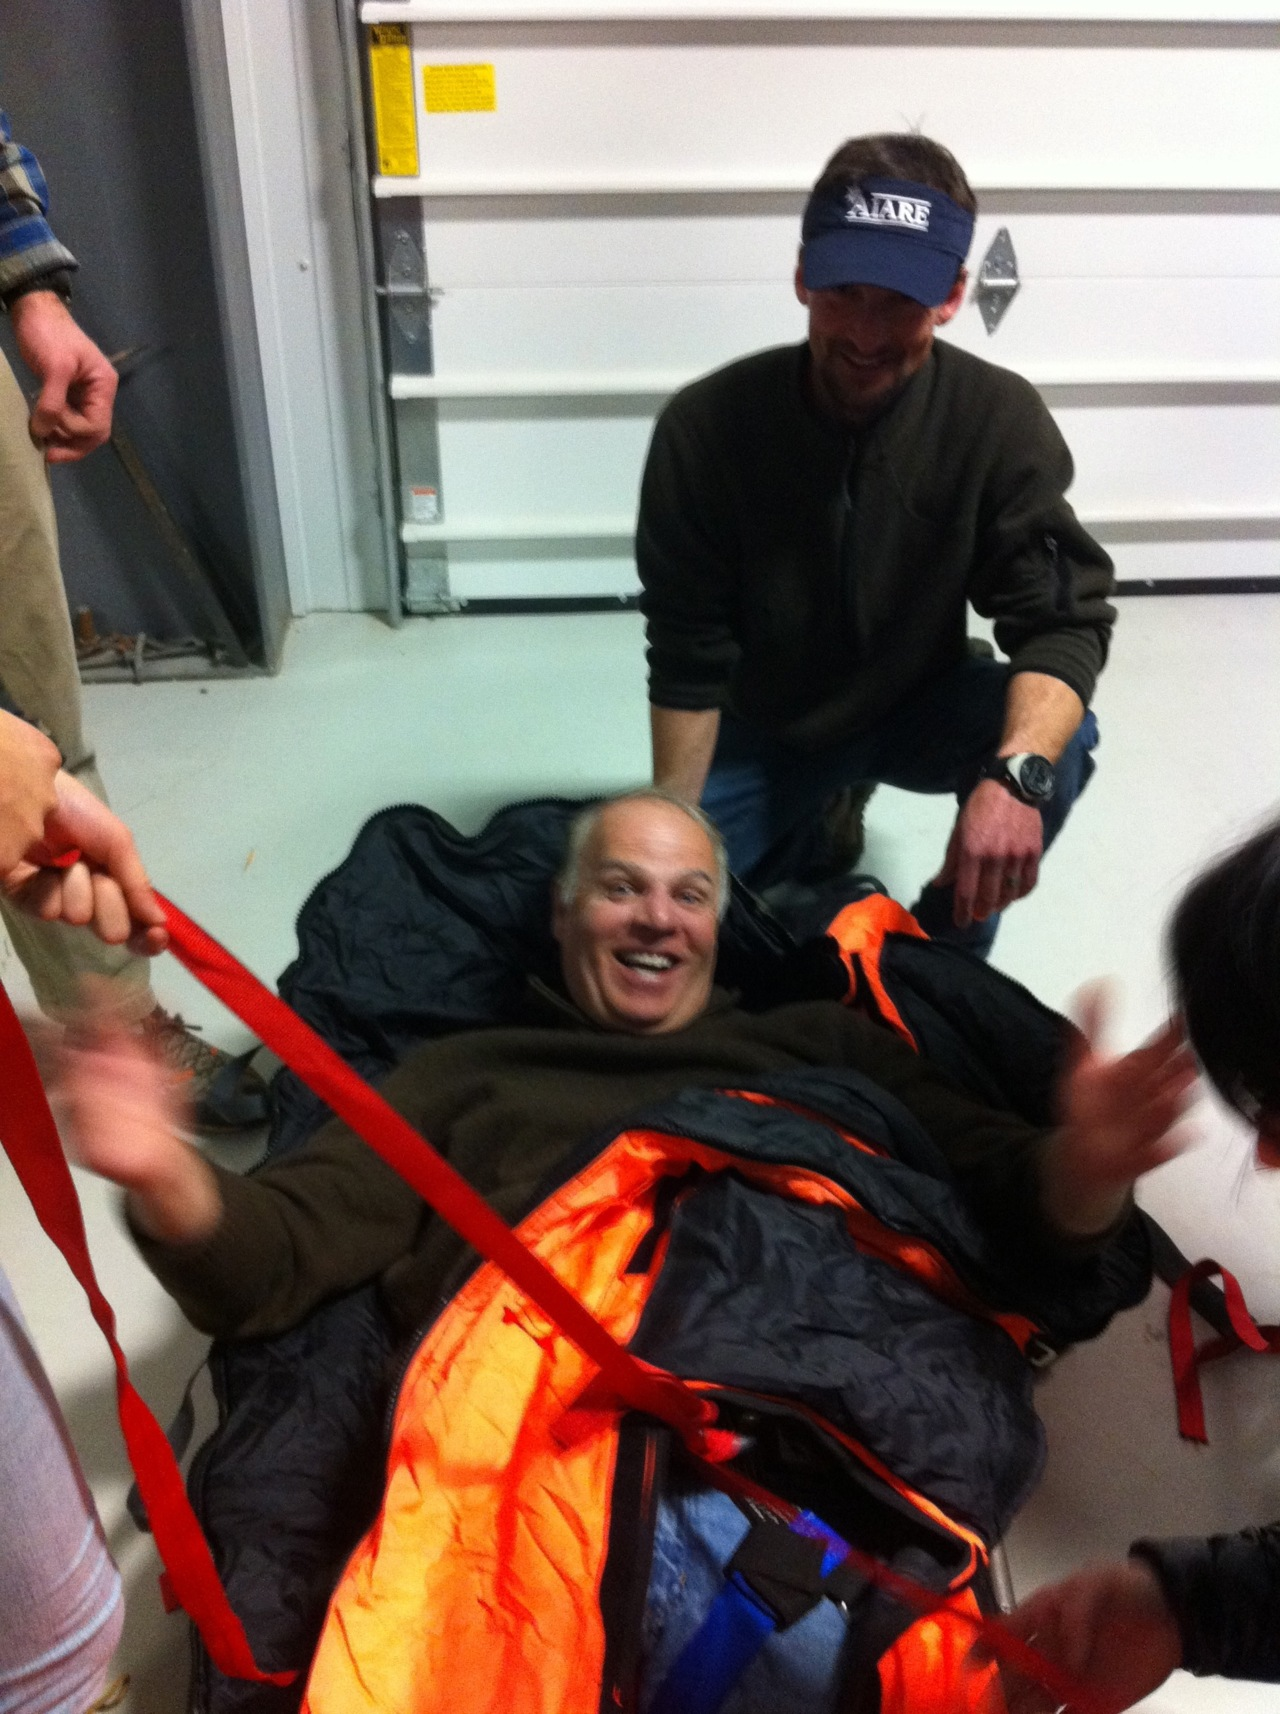 TCSAR members are training on Winter packaging and patient transport his month.  In this picture the president of TCSAR Tim Ciocarlan tries to escape from the clutches of the team!  Thanks for all you do Tim.